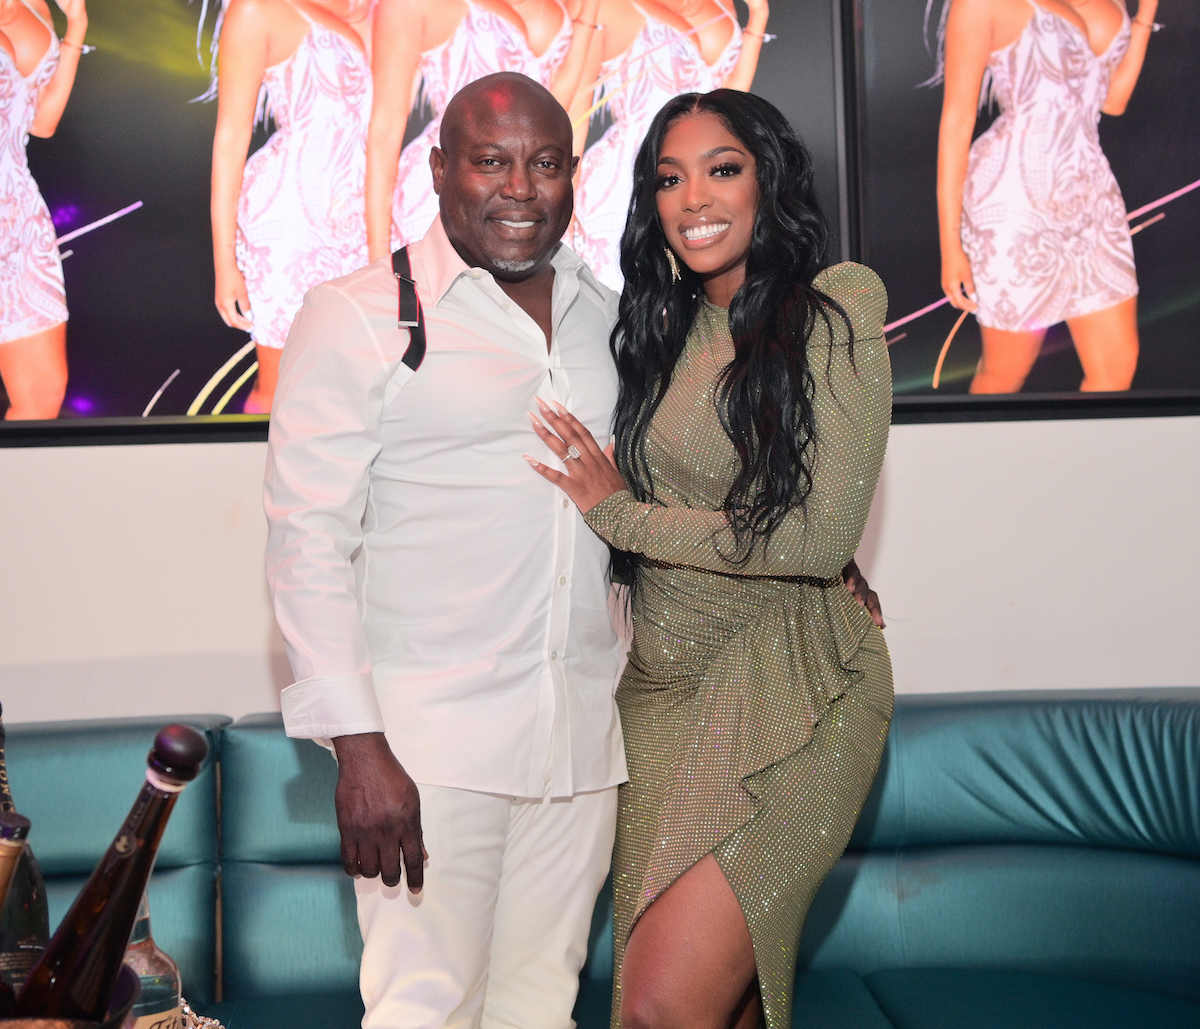 porsha-williams-shares-pics-from-her-date-night-and-impresses-fans